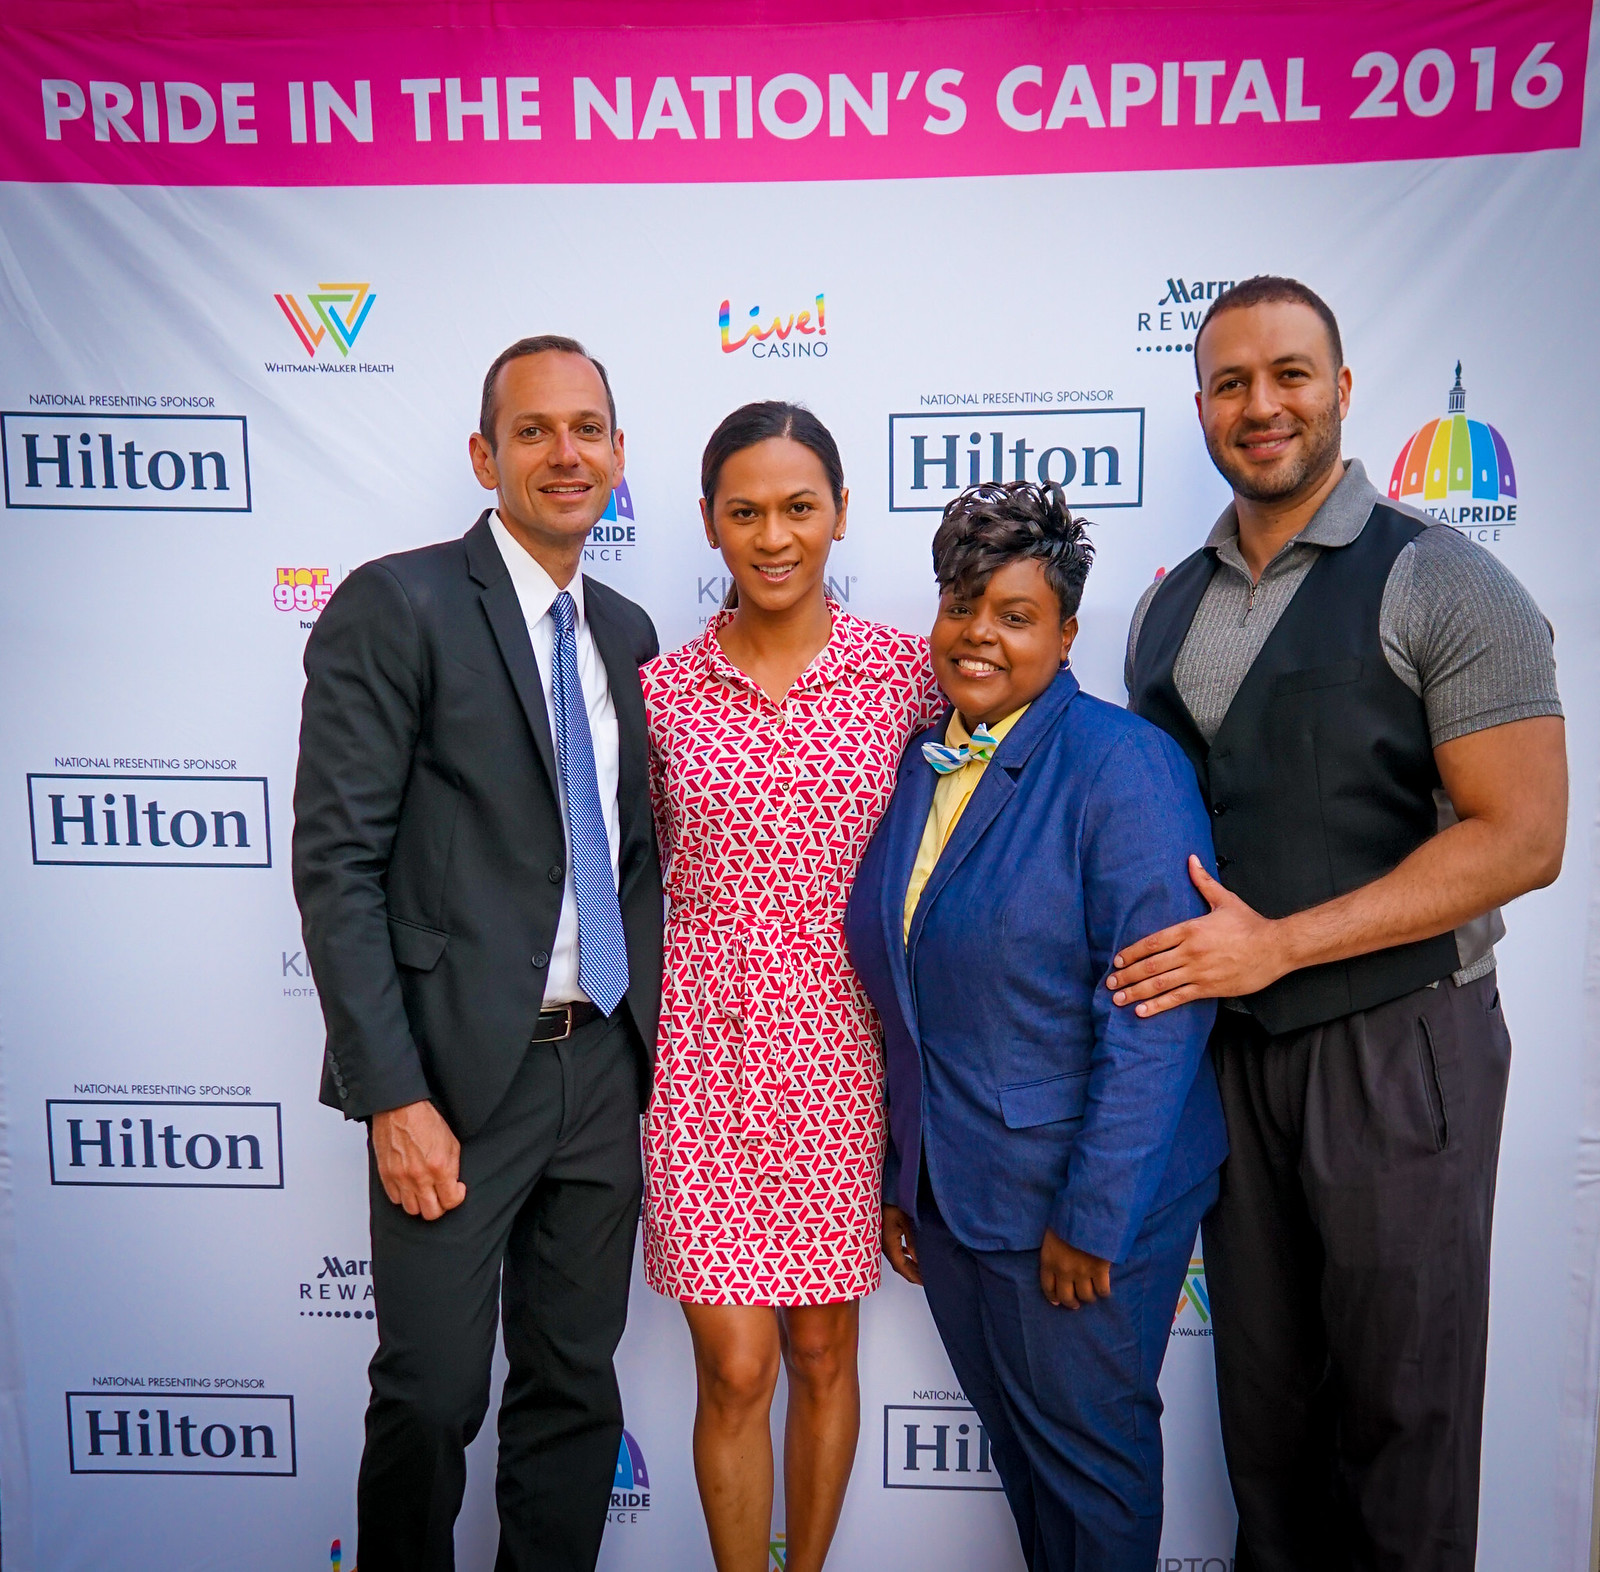 2016.06.02 Heroes Gala Capital Pride DC Washington DC USA 37386